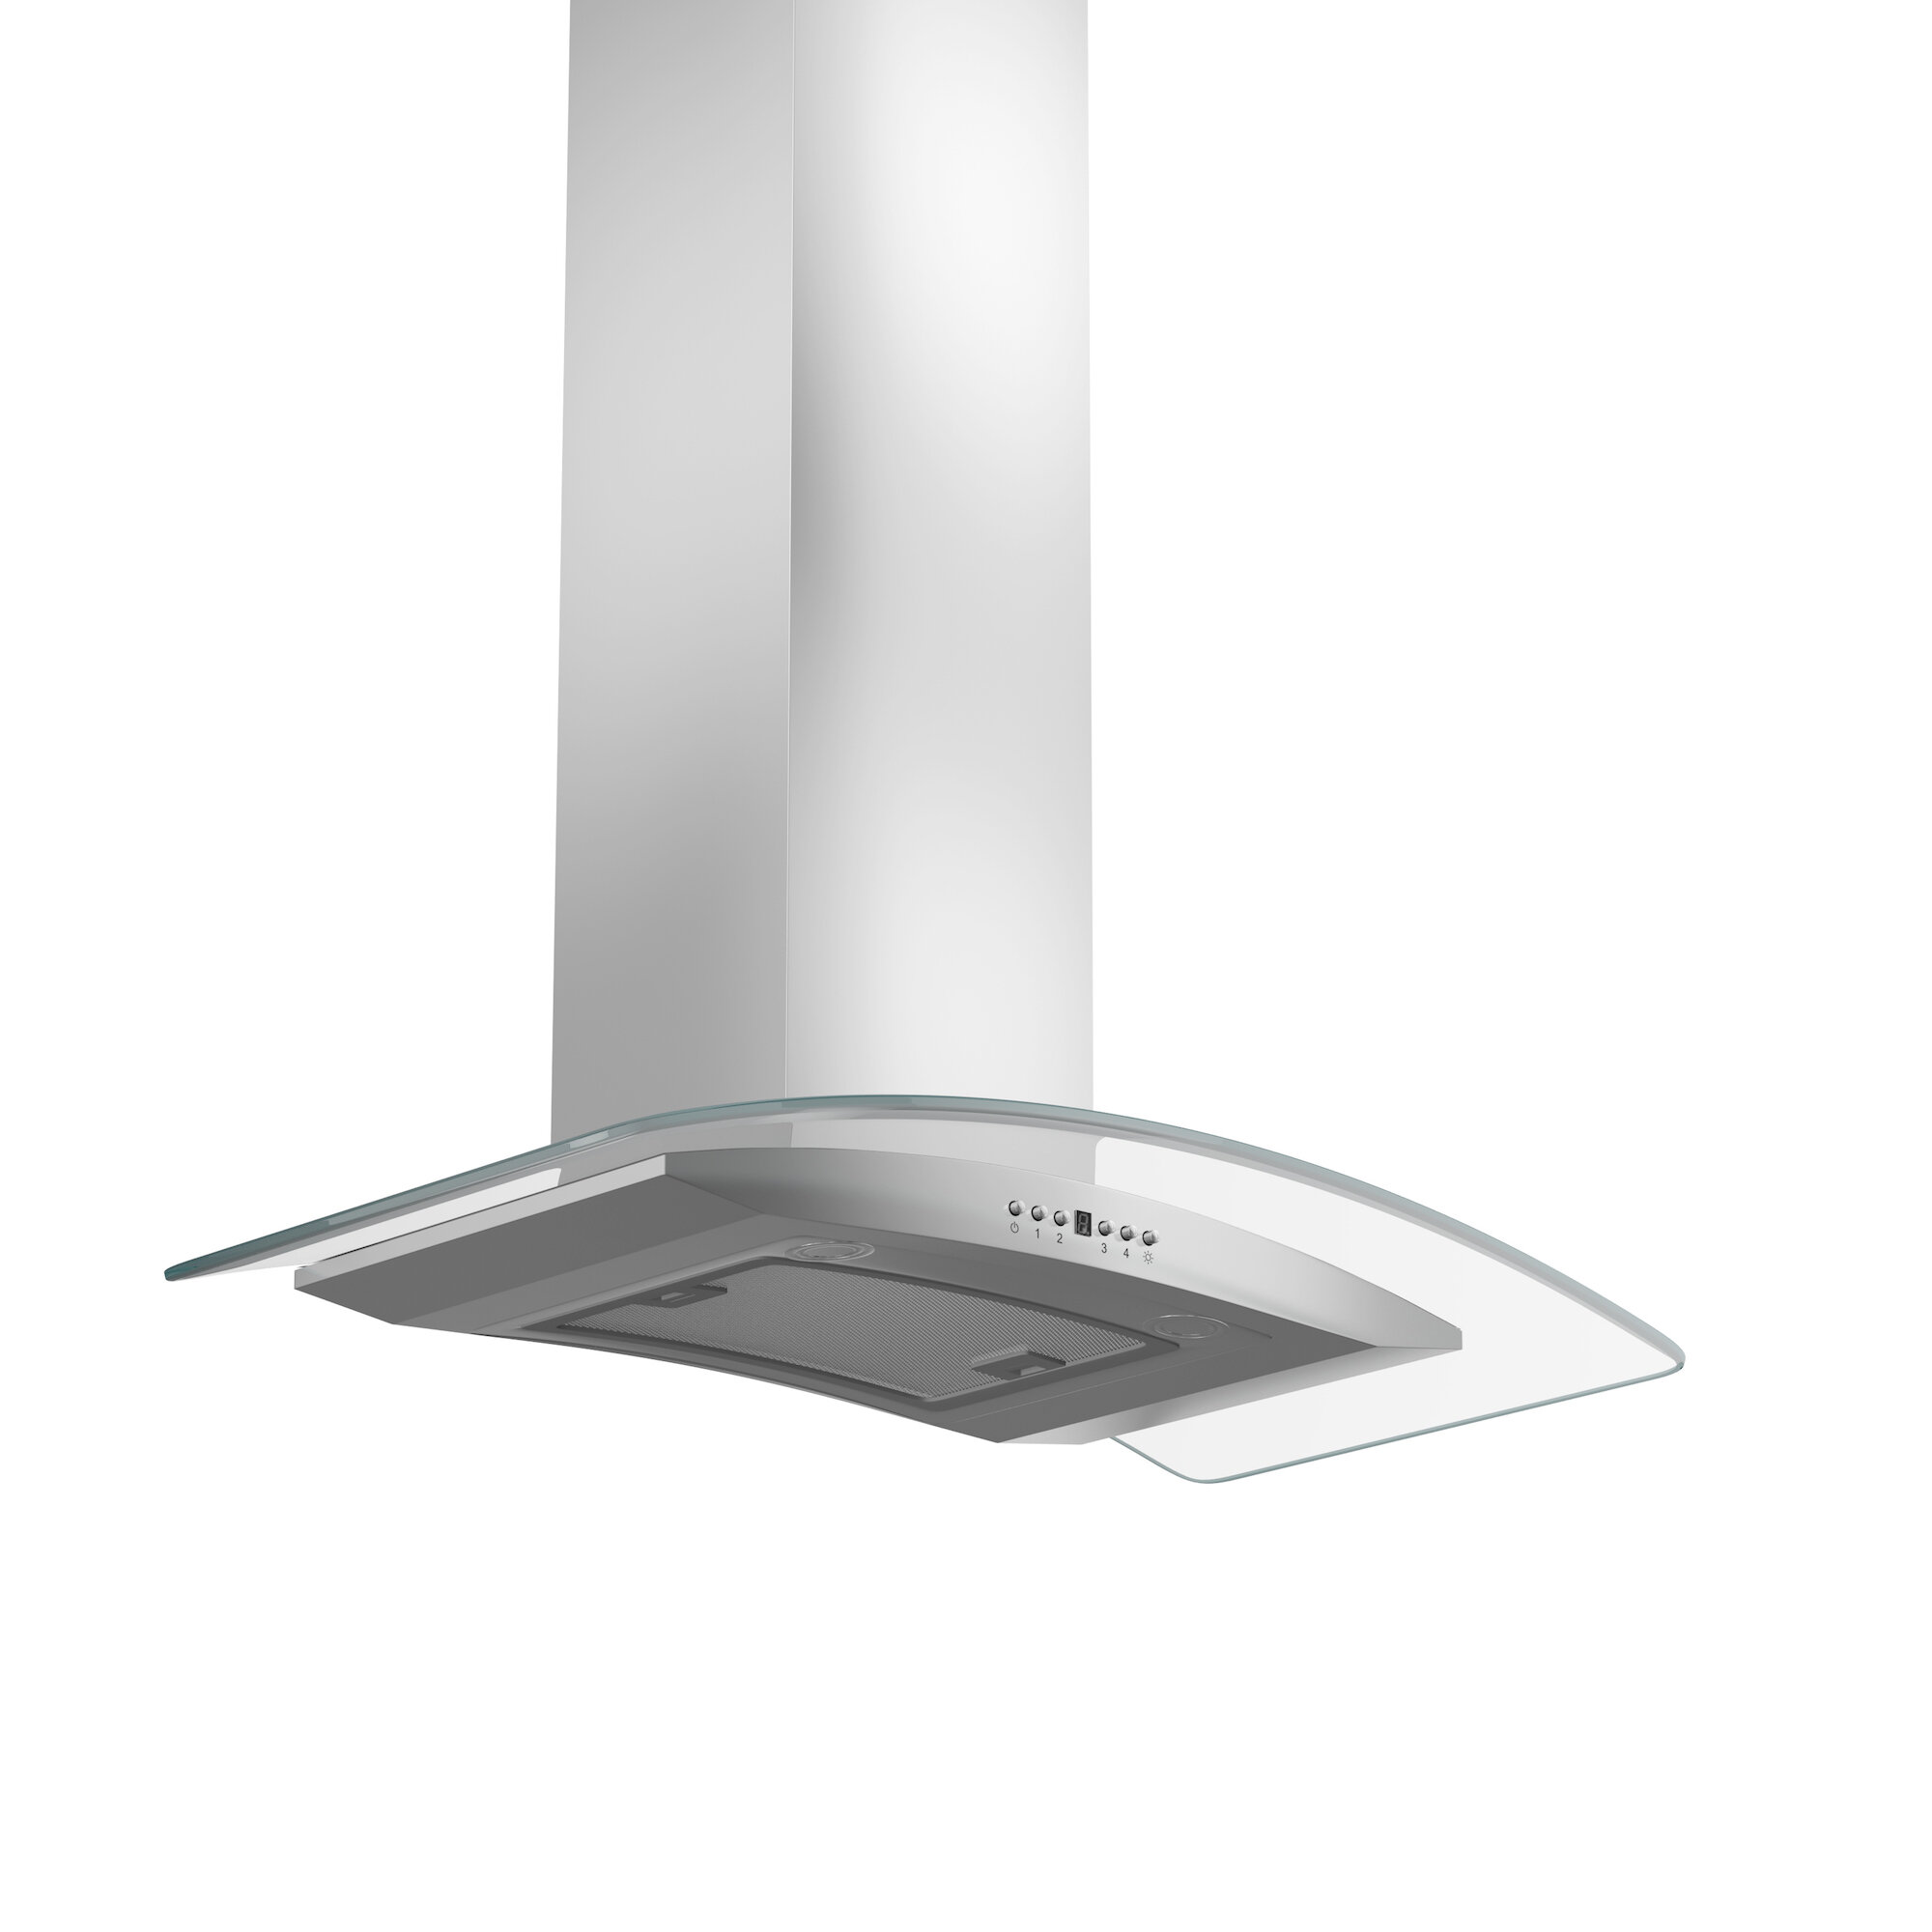 24 Stainless Steel Curved Tempered Glass Hood Vent Hood RV Kitchen 110V Electric Switch 3 Speed Motor RV Curved Glass Range Hood